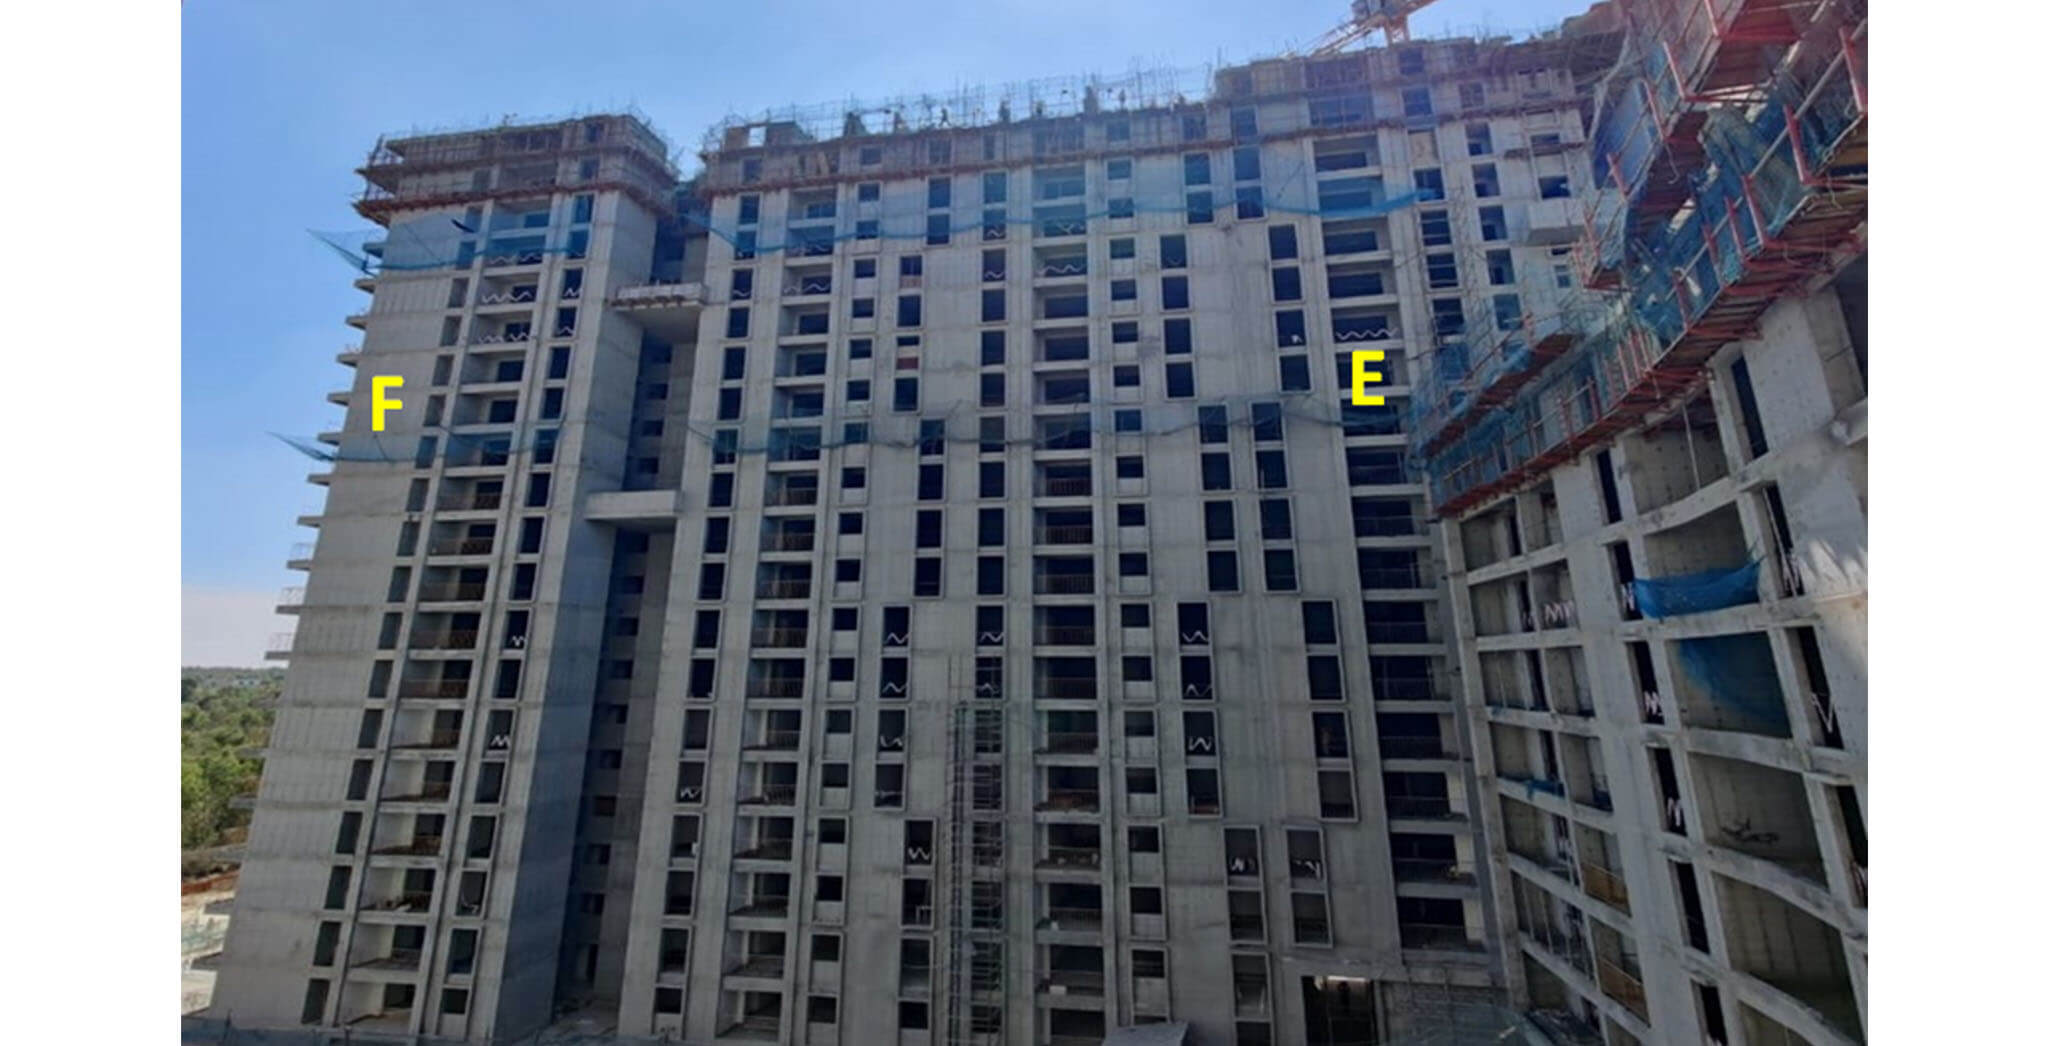 Dec 2020 - Serene: Tower E—20th floor slab structure work-in-progress; Tower F—20th floor slab structure work-in-progress